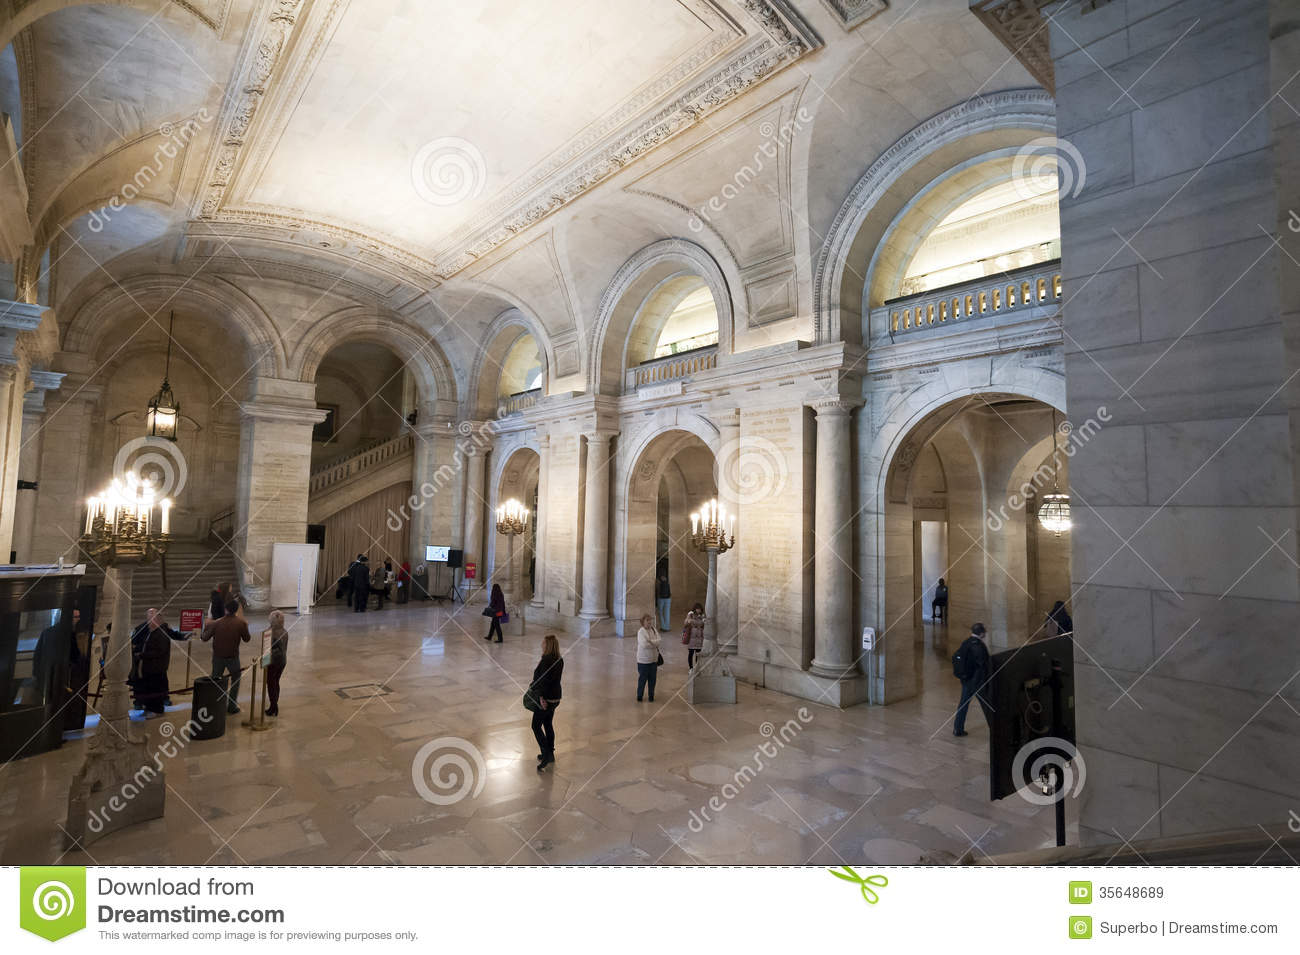 Royalty Free Stock Images New York Public Library Interior October Nearly Million Items Second Largest Image35648689 on Latest Book Writing App